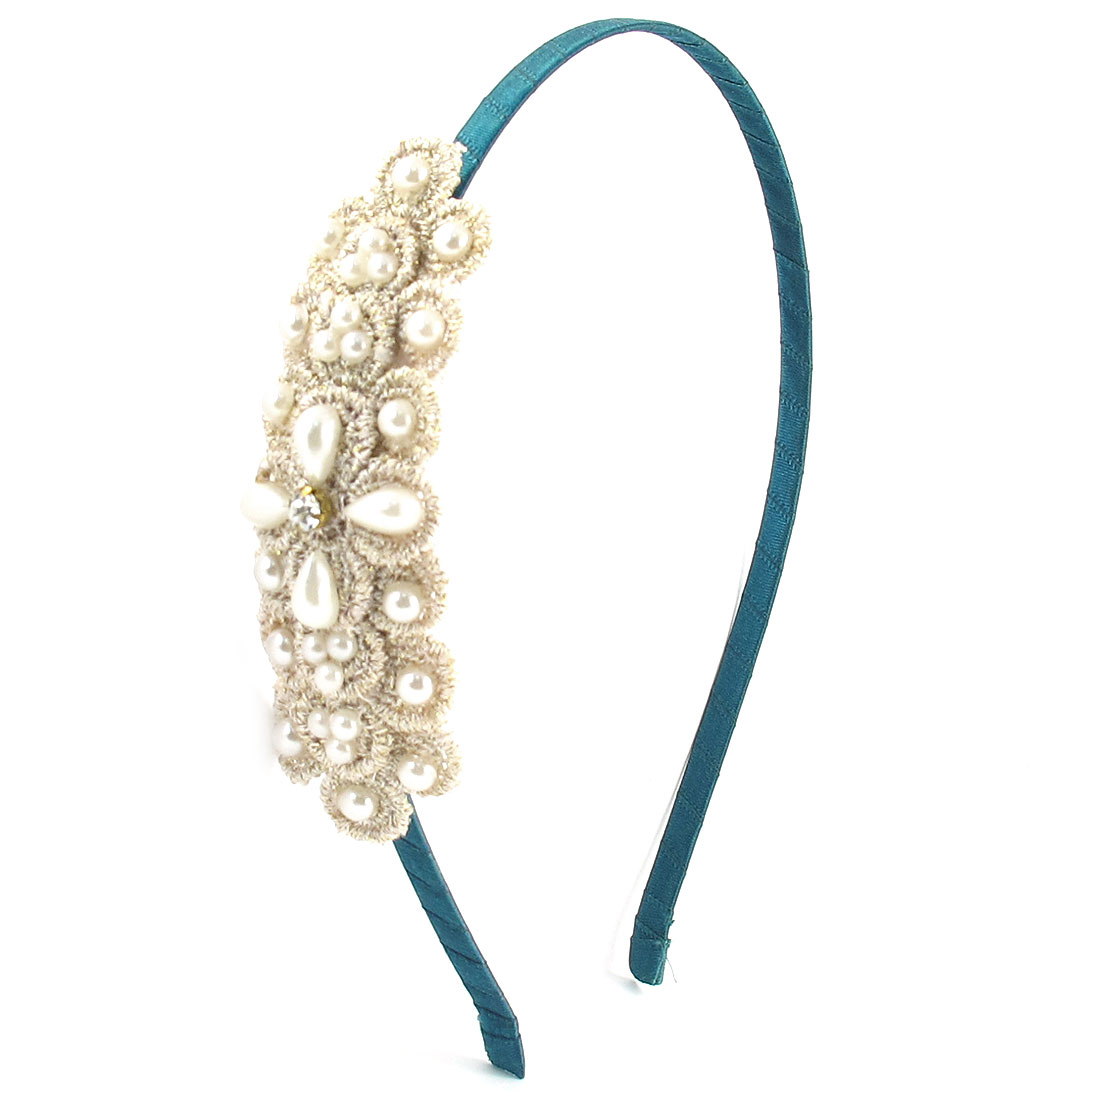 White Faux Pearl Detailing Hairstyle Hair Band Hoop Headwear Green for Lady